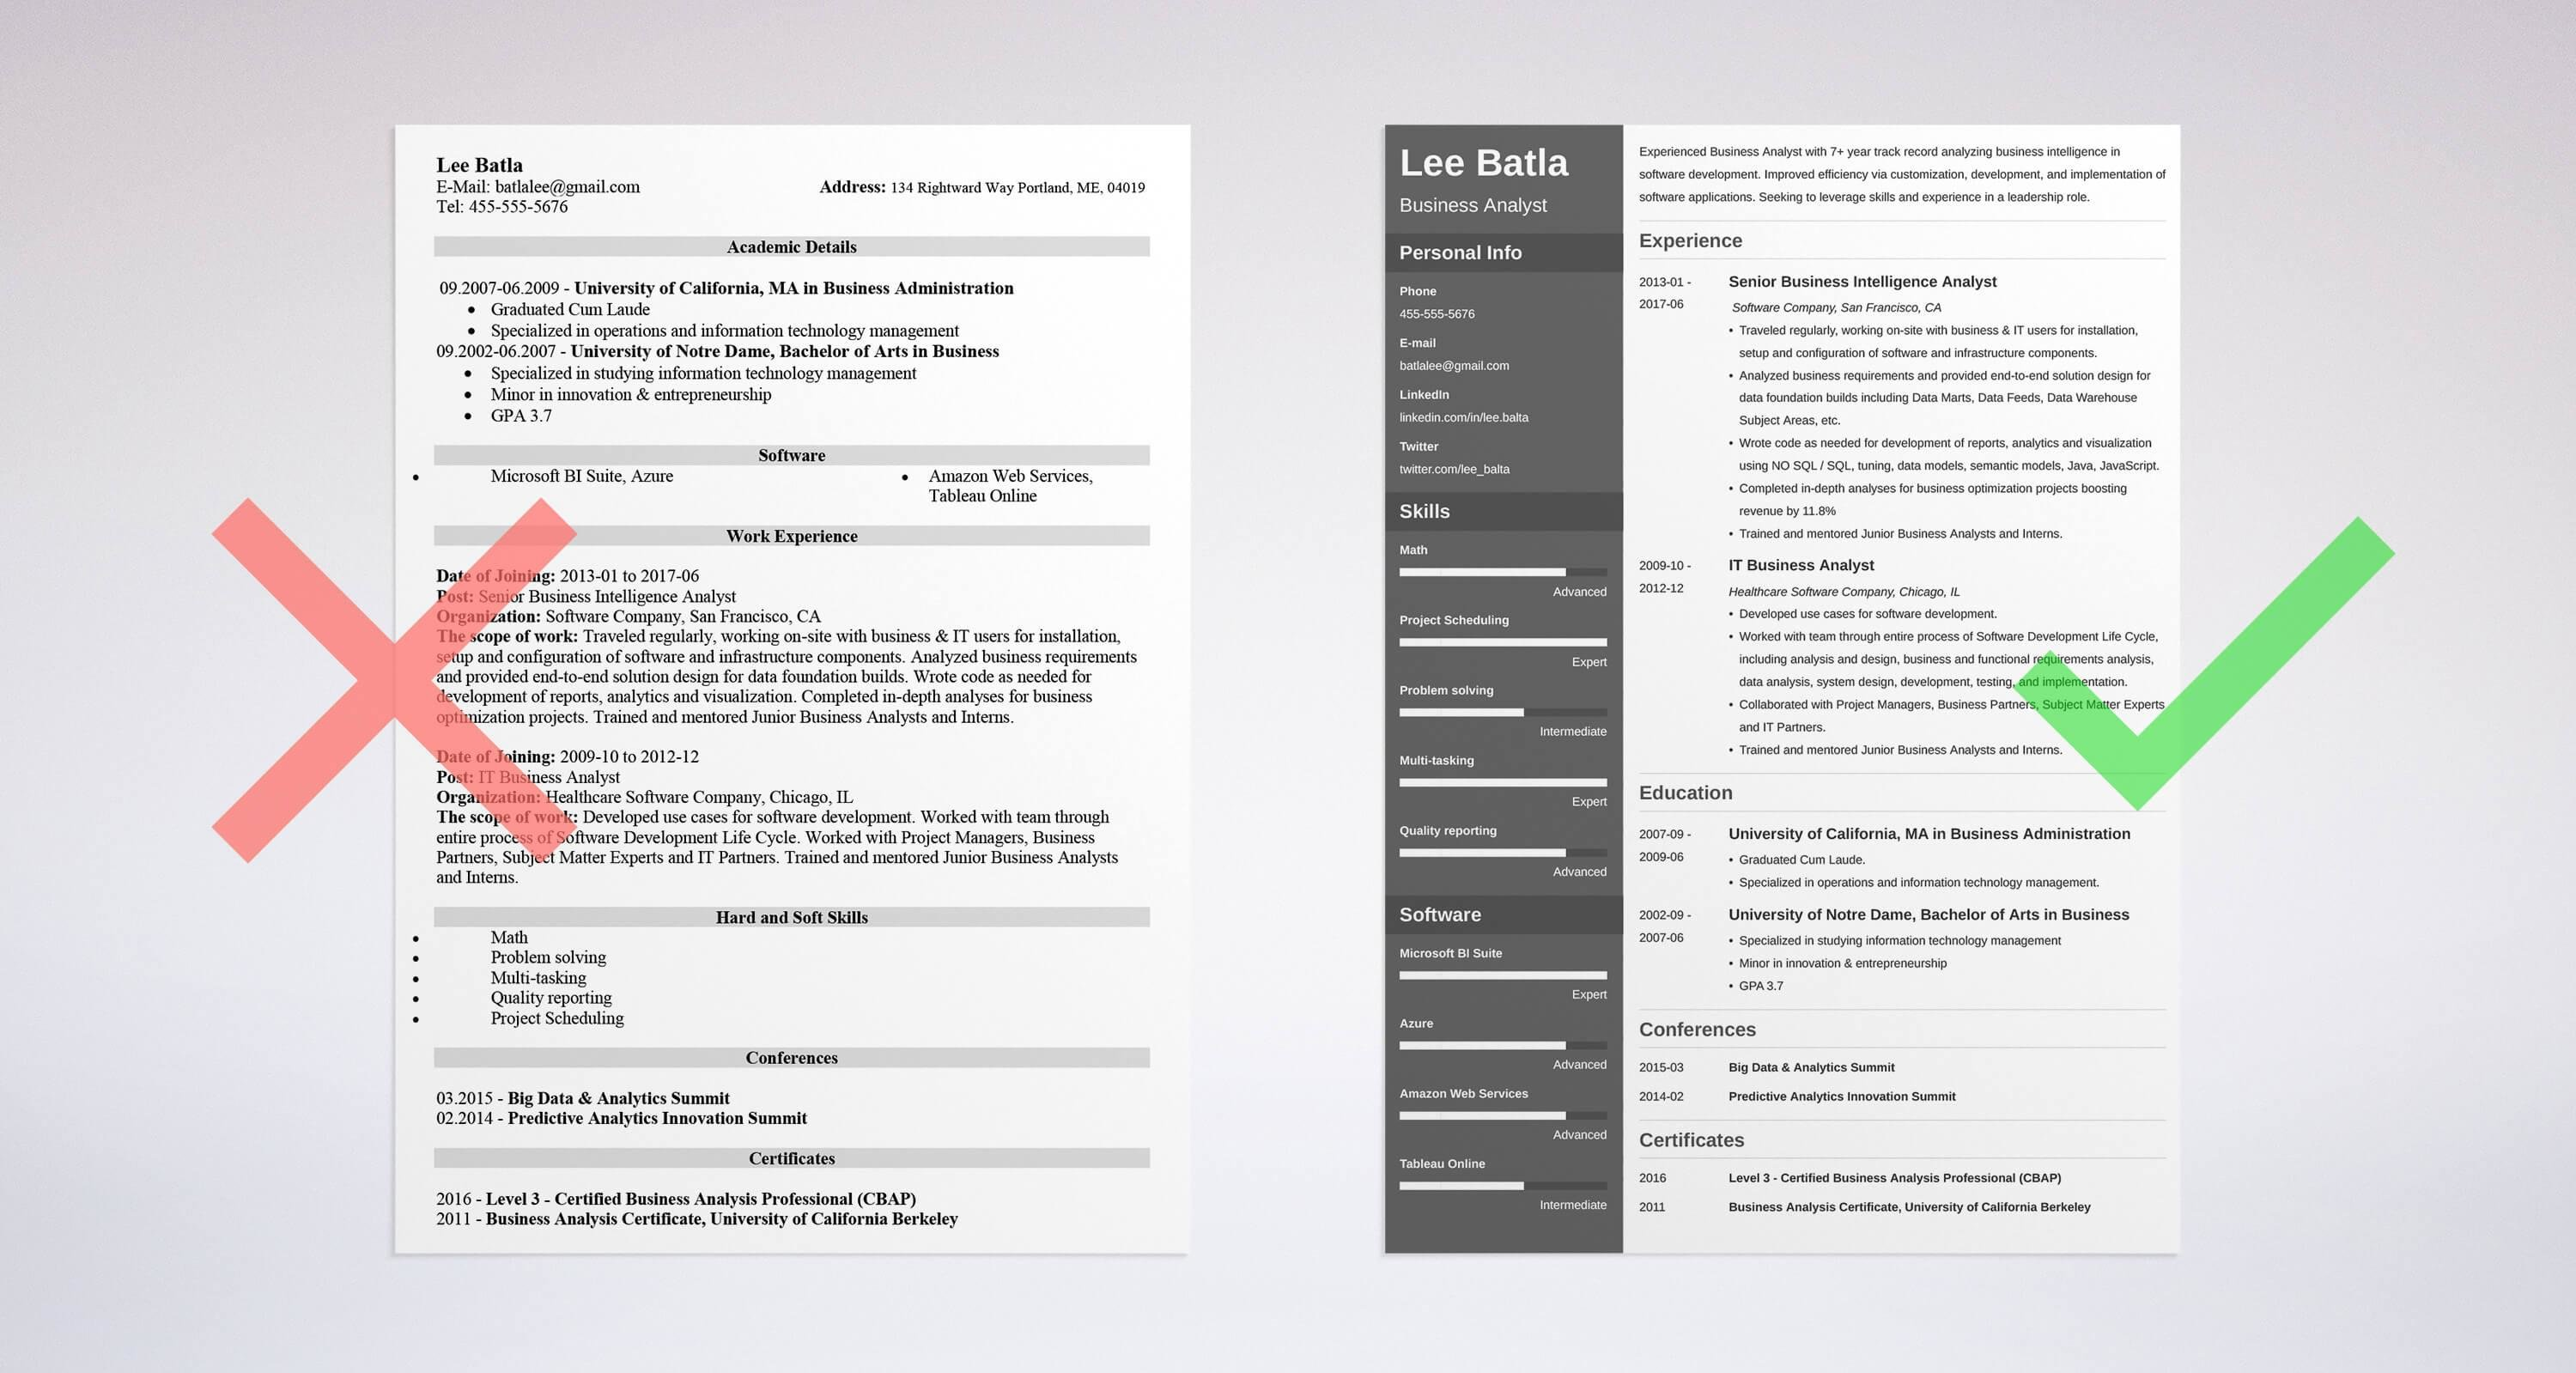 business analyst resume sample plete guide [ 20 examples]